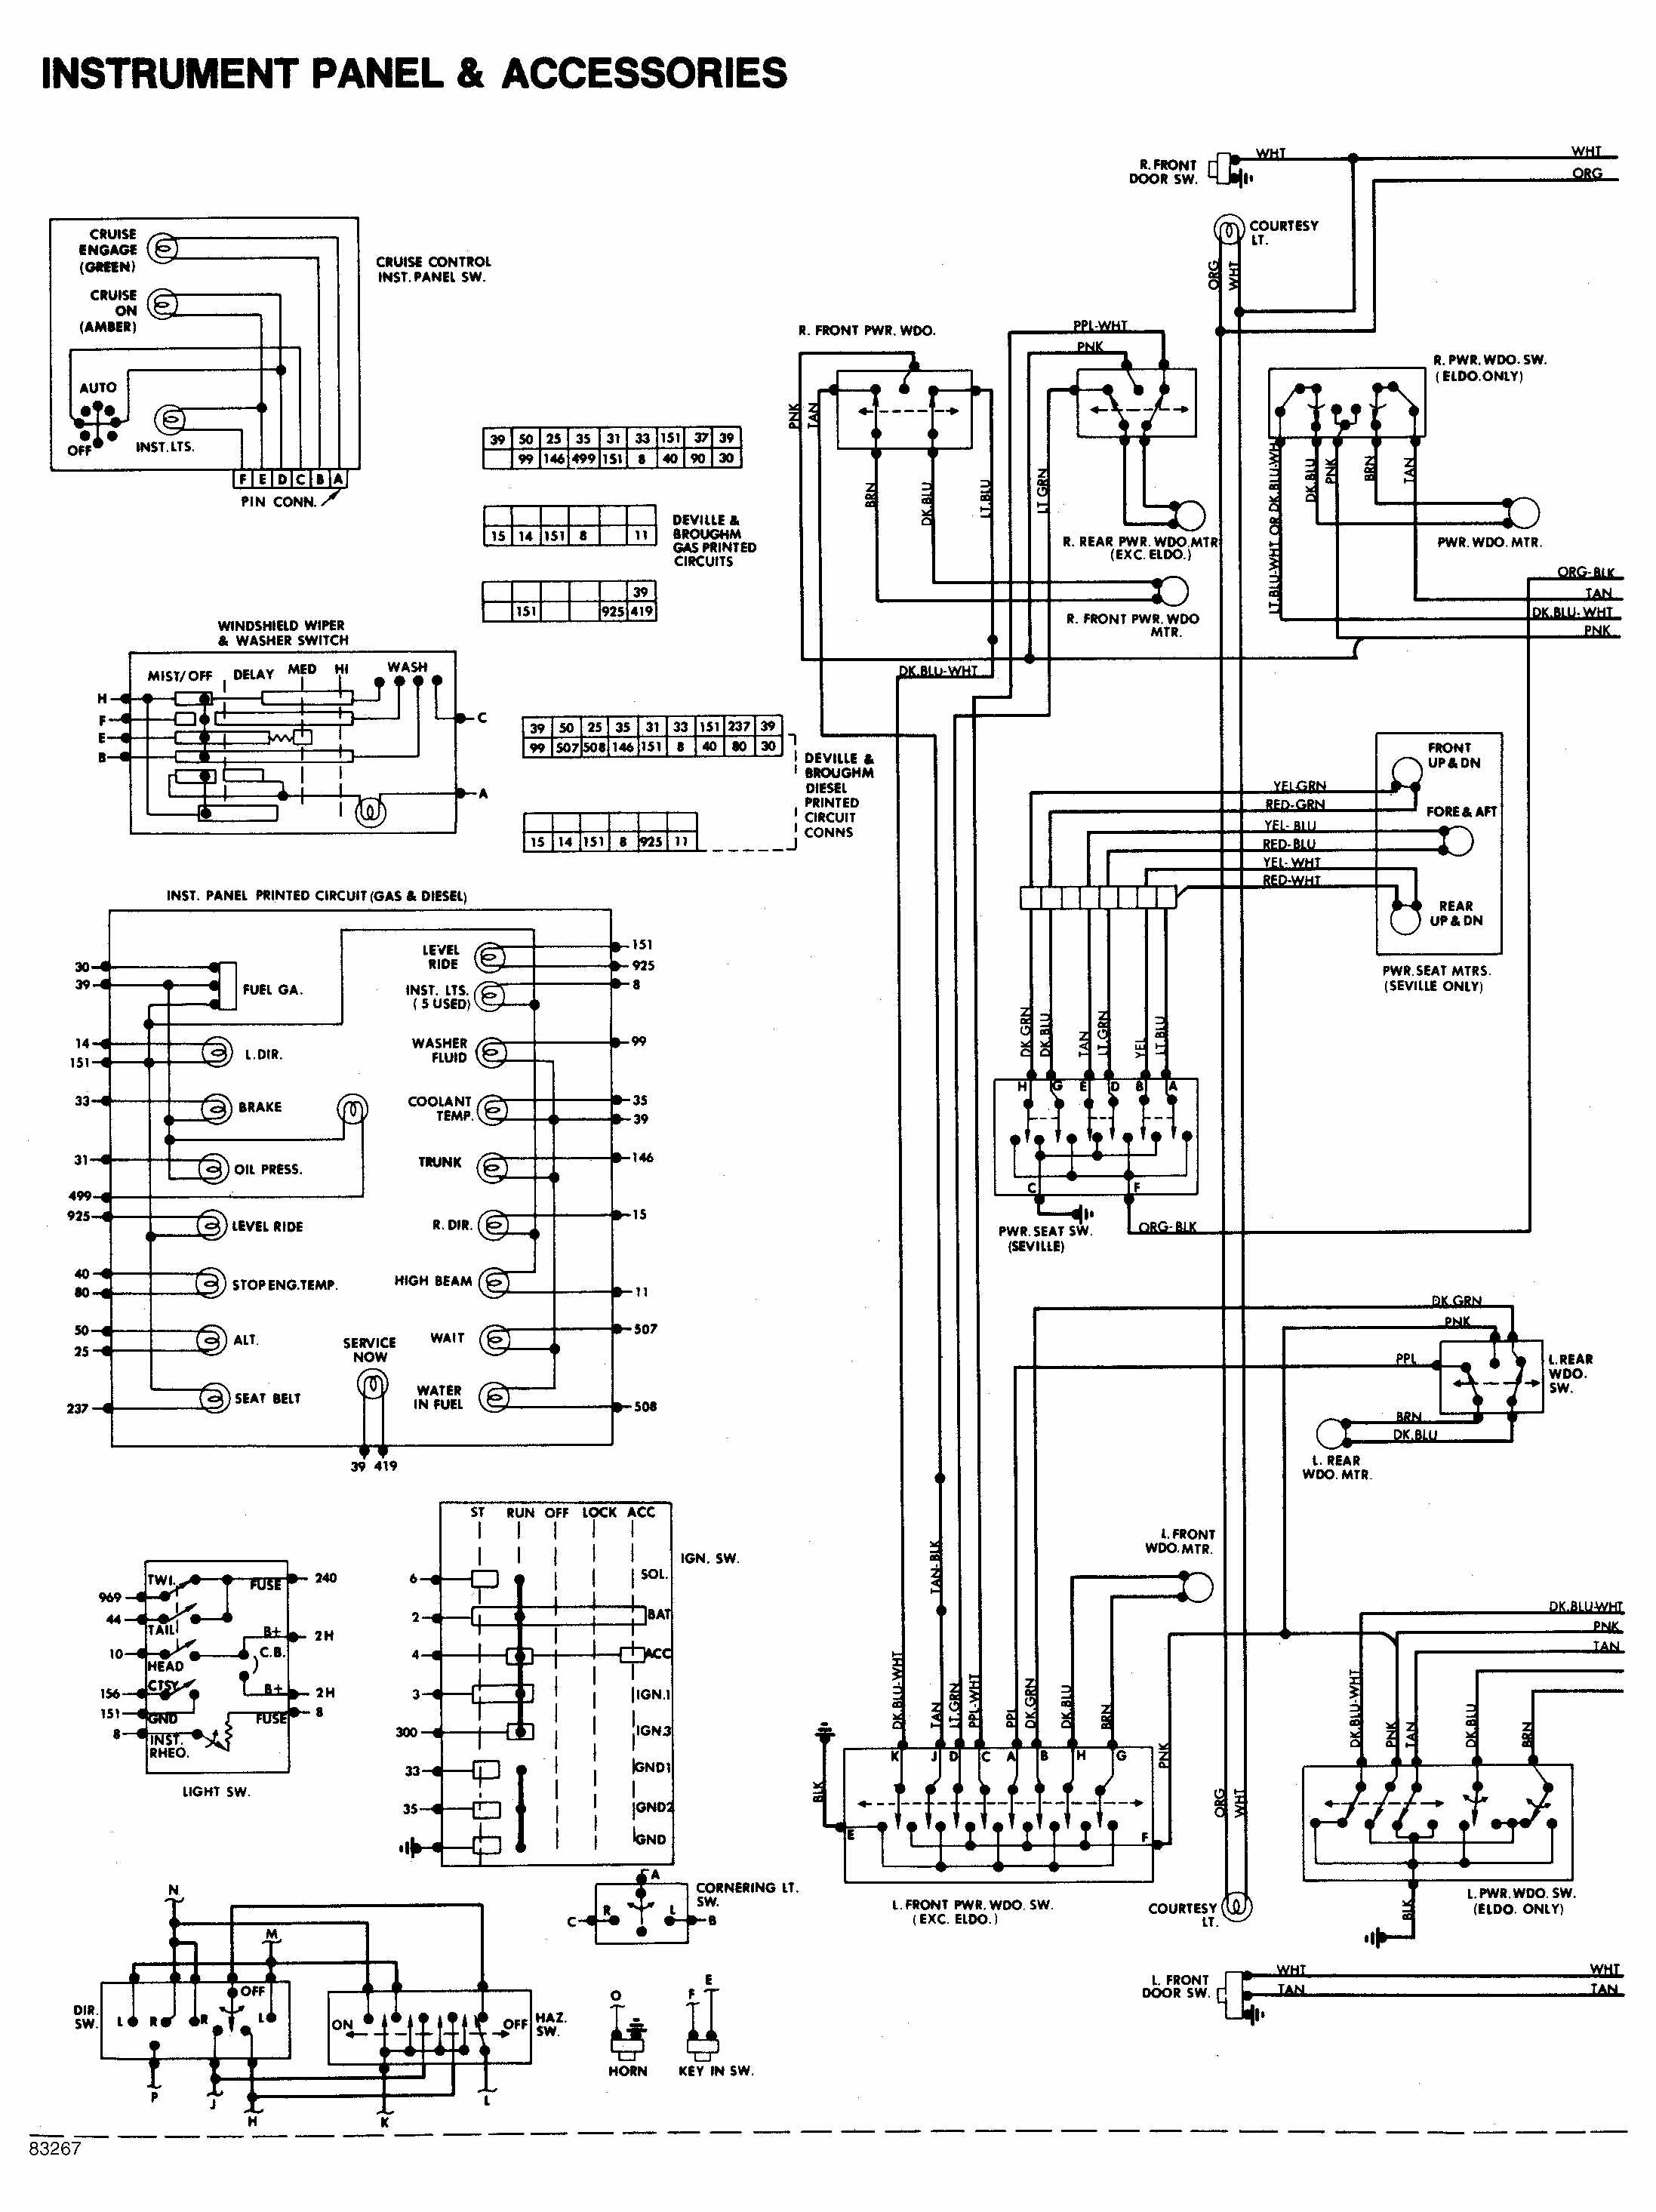 instrument panel and accessories wiring diagram of 1984 cadillac deville gm wiring diagrams gm wiring diagrams online \u2022 wiring diagrams j 1937 Chevy Panel Truck at alyssarenee.co